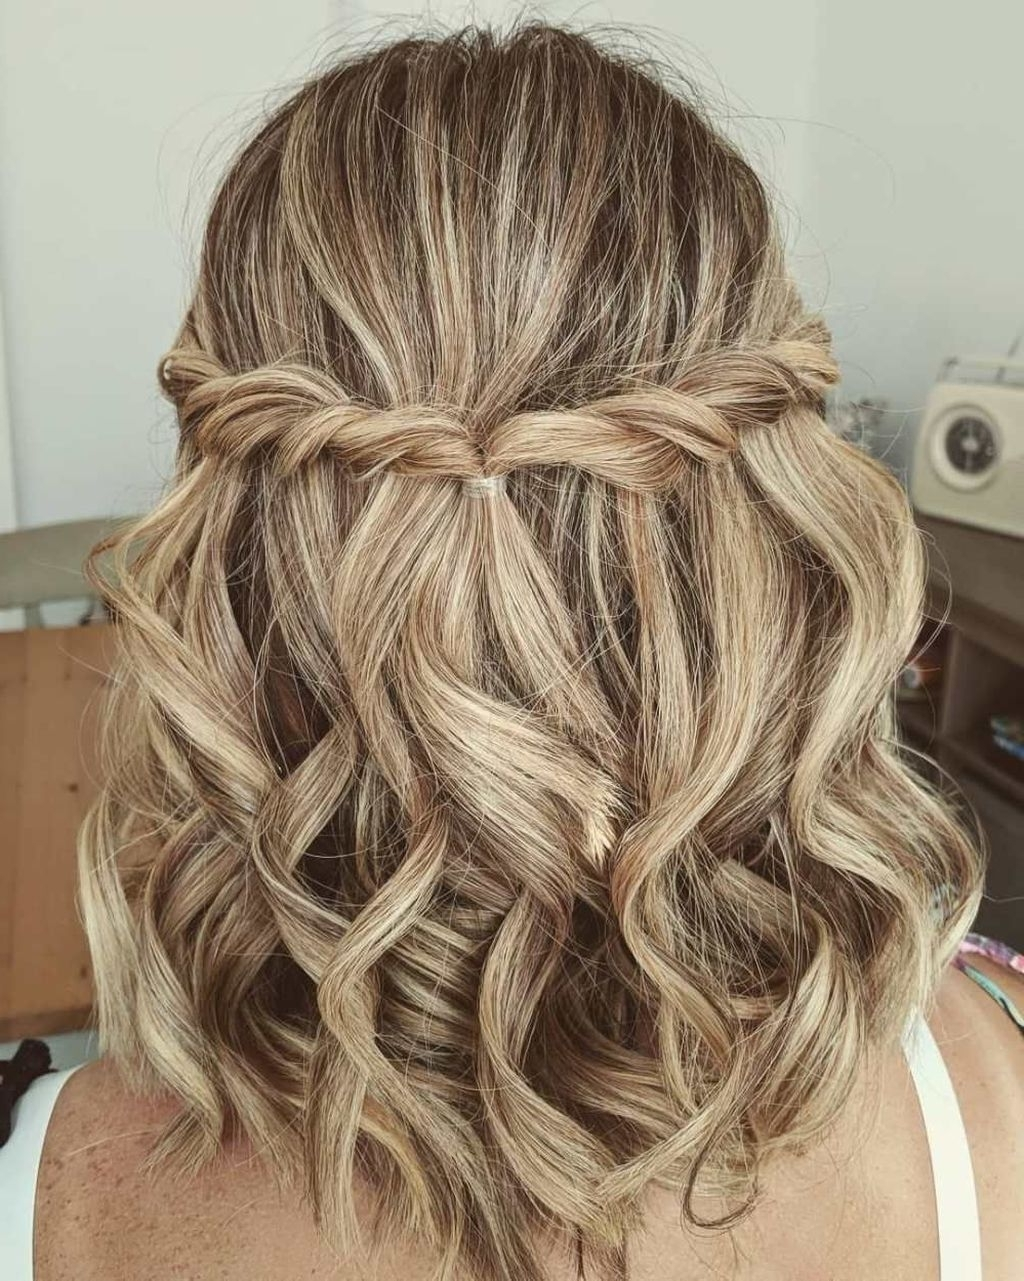 50 Newest Short Formal Hairstyles Ideas For Women | Updos Medium Length Prom Hairstyles